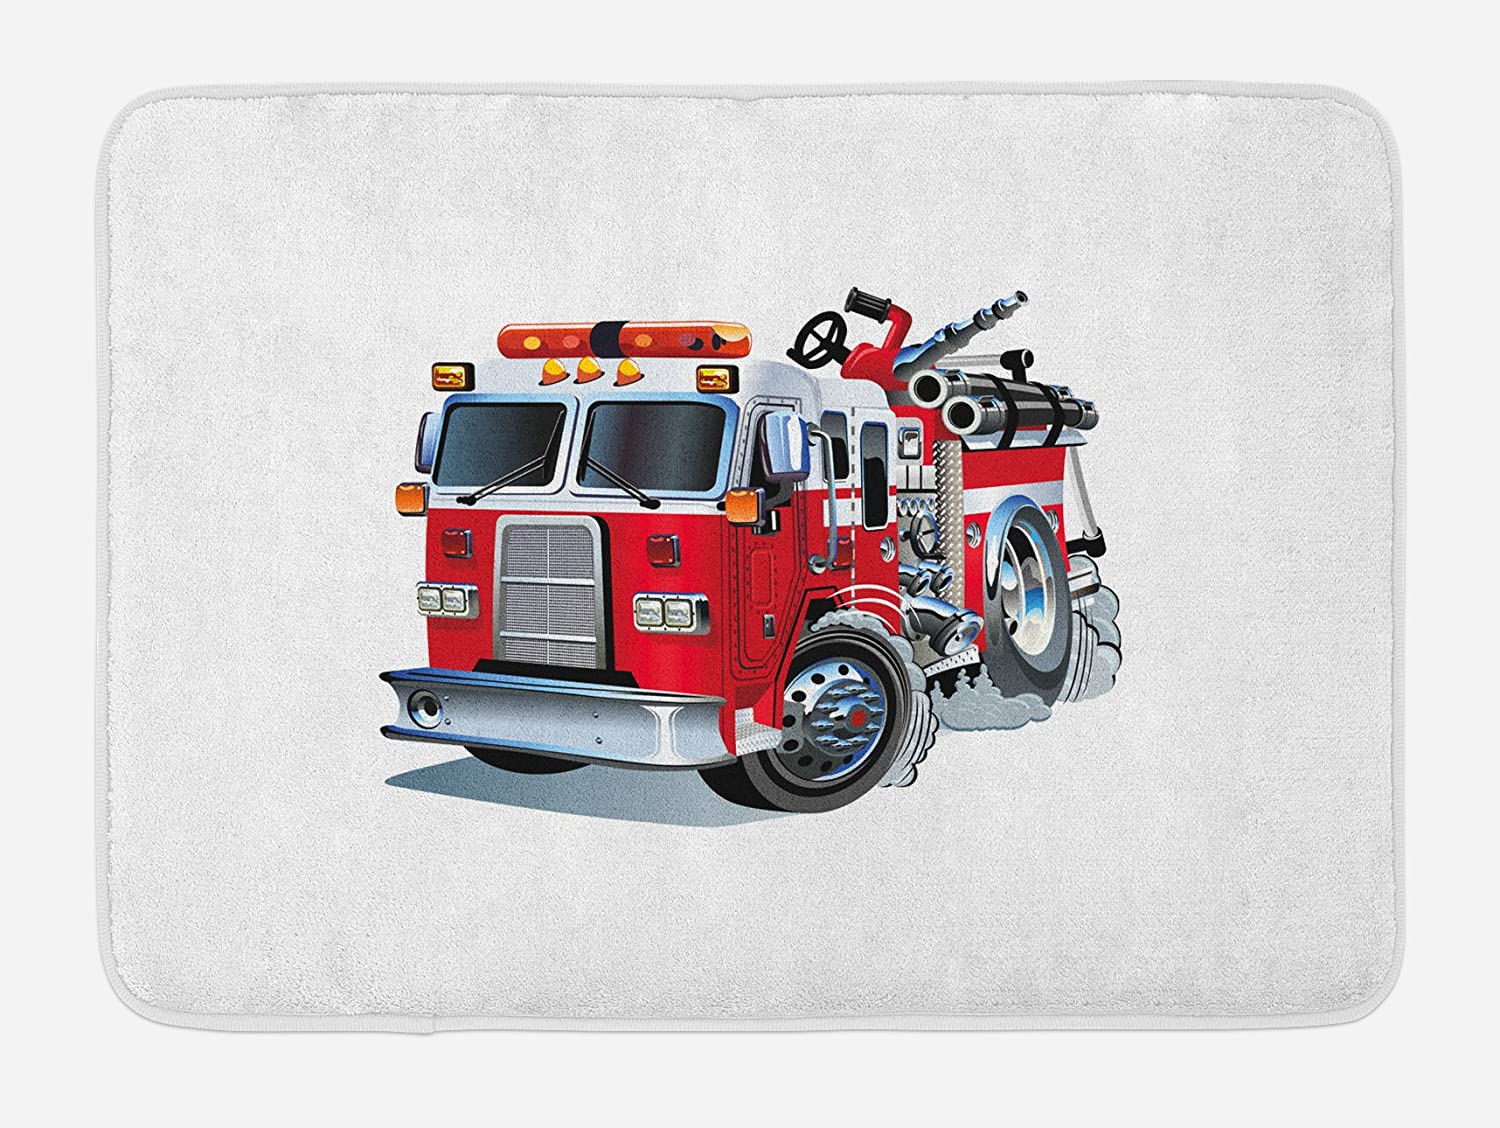 """Ambesonne Truck Bath Mat, Fire Brigade Vehicle Emergency Aid for Public Firefighter Transportation Themed Lorry, Plush Bathroom Decor Mat with Non Slip Backing, 29.5"""" X 17.5"""", Grey Red"""